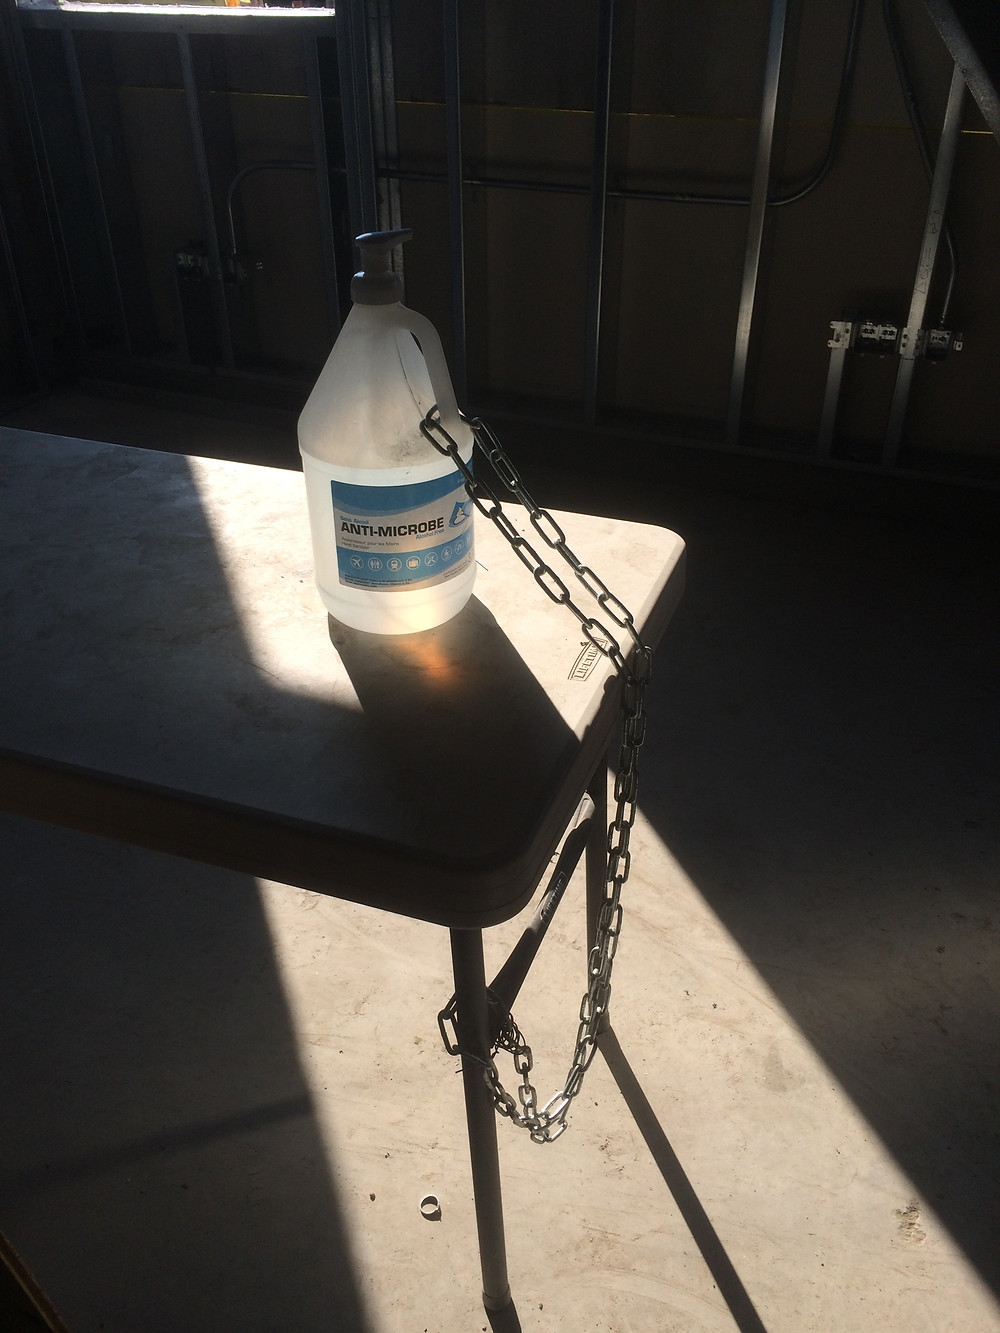 Hand sanitizer chained to a table